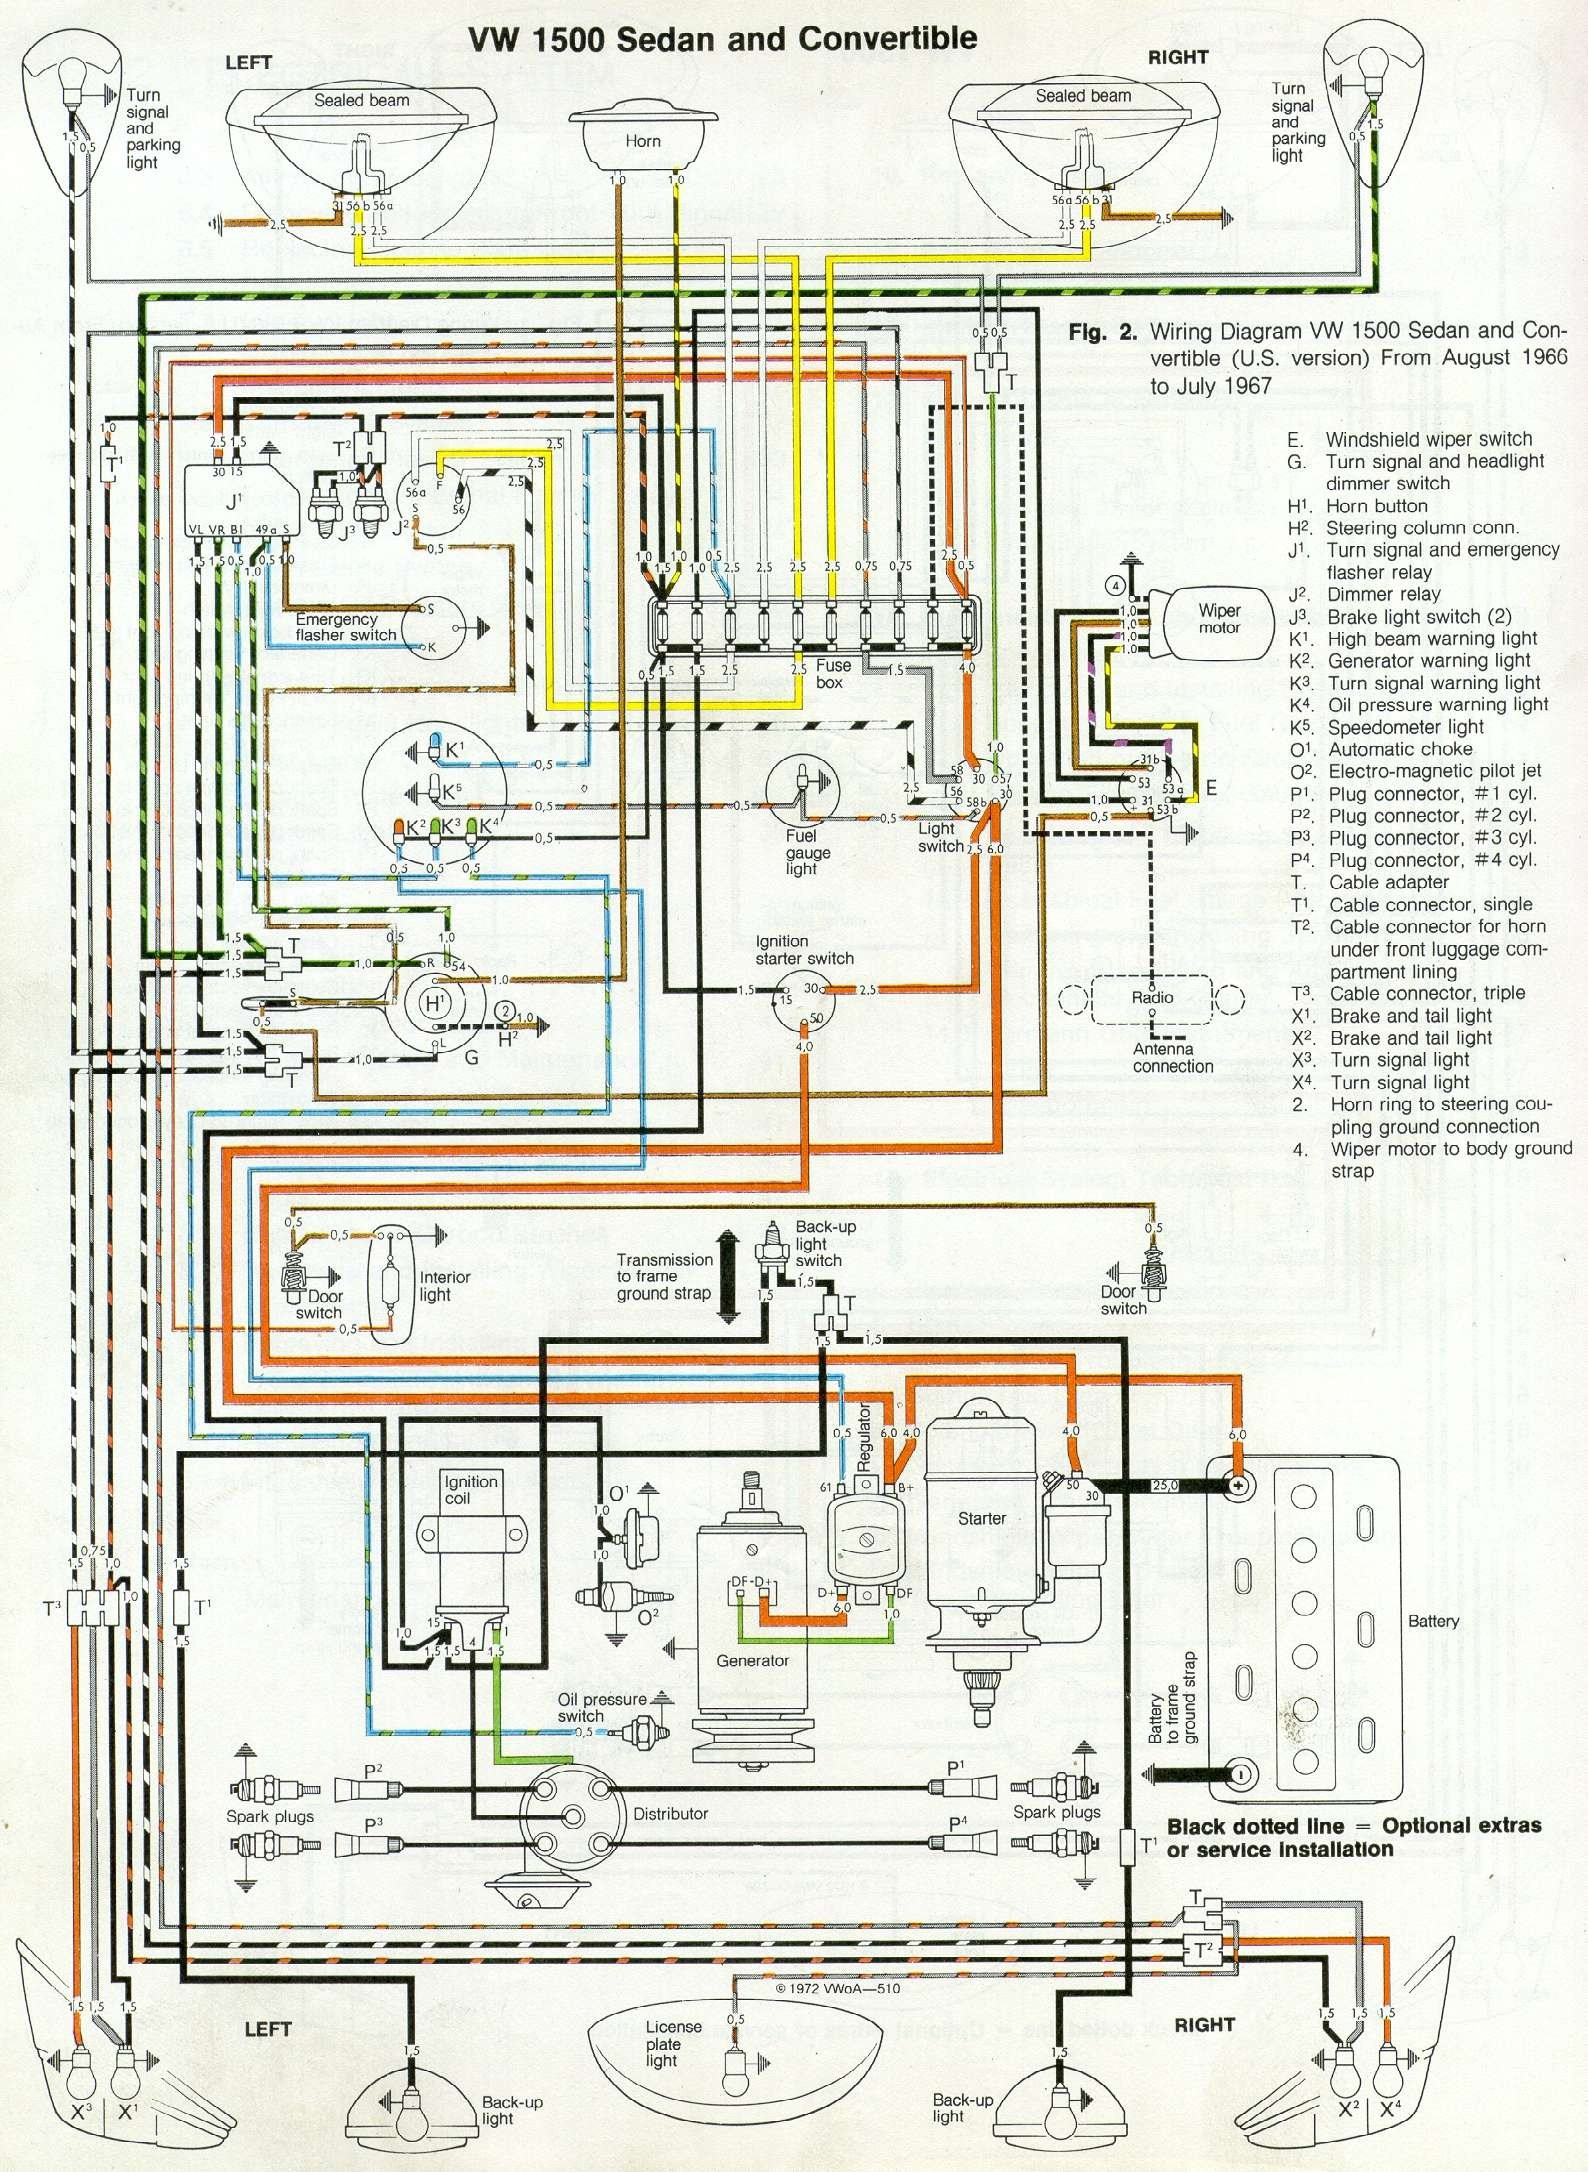 67 beetle wiring diagram \u2013 u s version \u2013 1967 vw beetle VW Beetle Generator Wiring Diagram you can download it